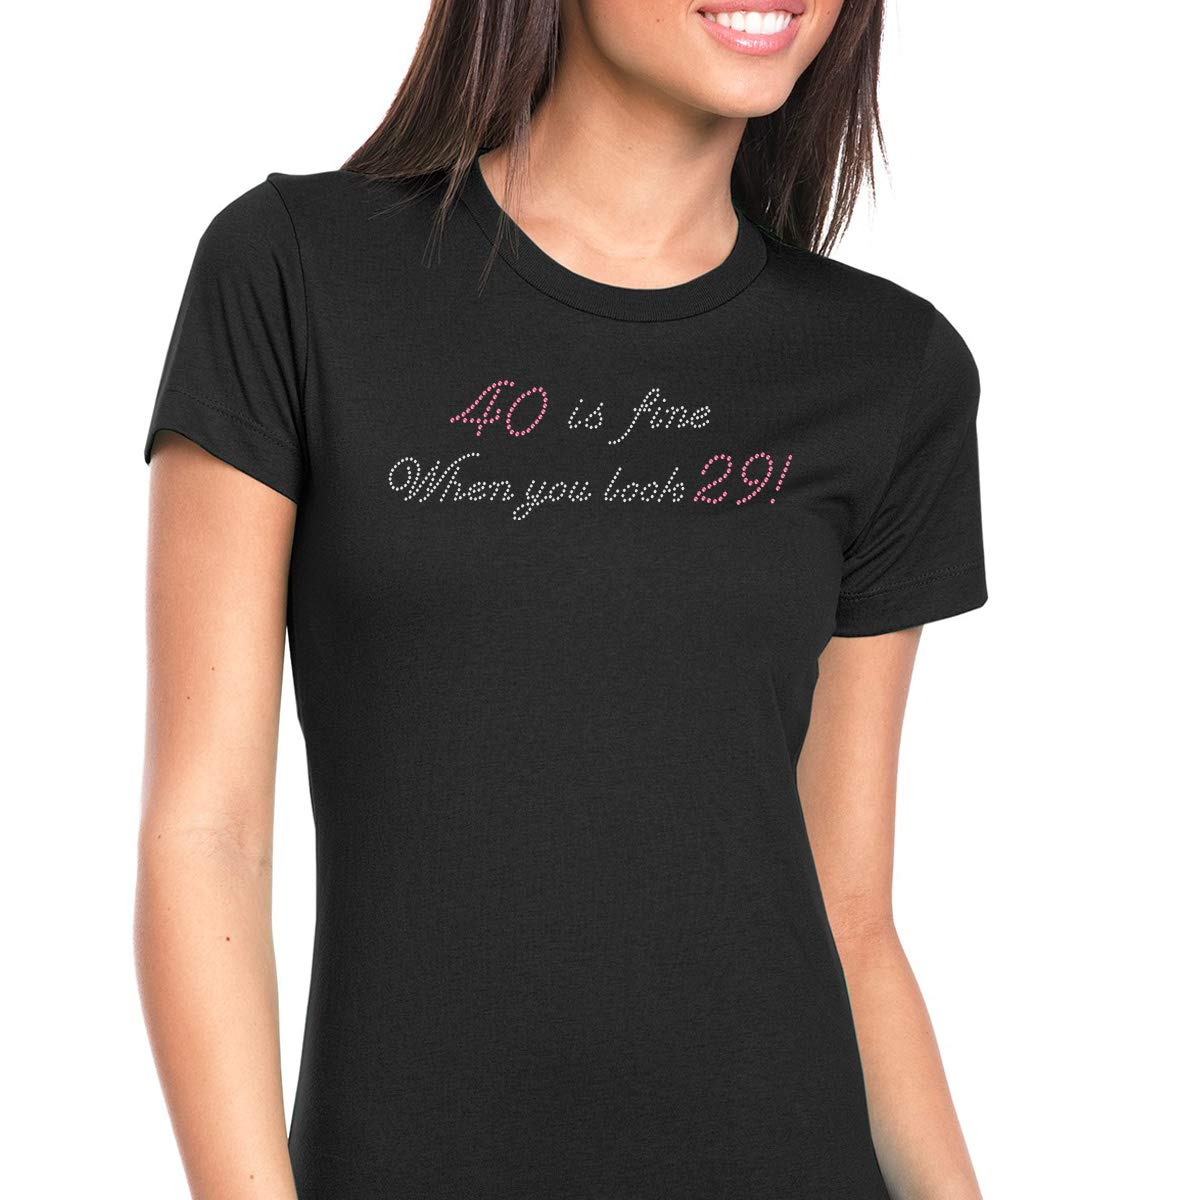 Rhinestone Wear Womens T-Shirt Bling Black Tee 40 is Fine When You Look 29 Crew Neck Medium